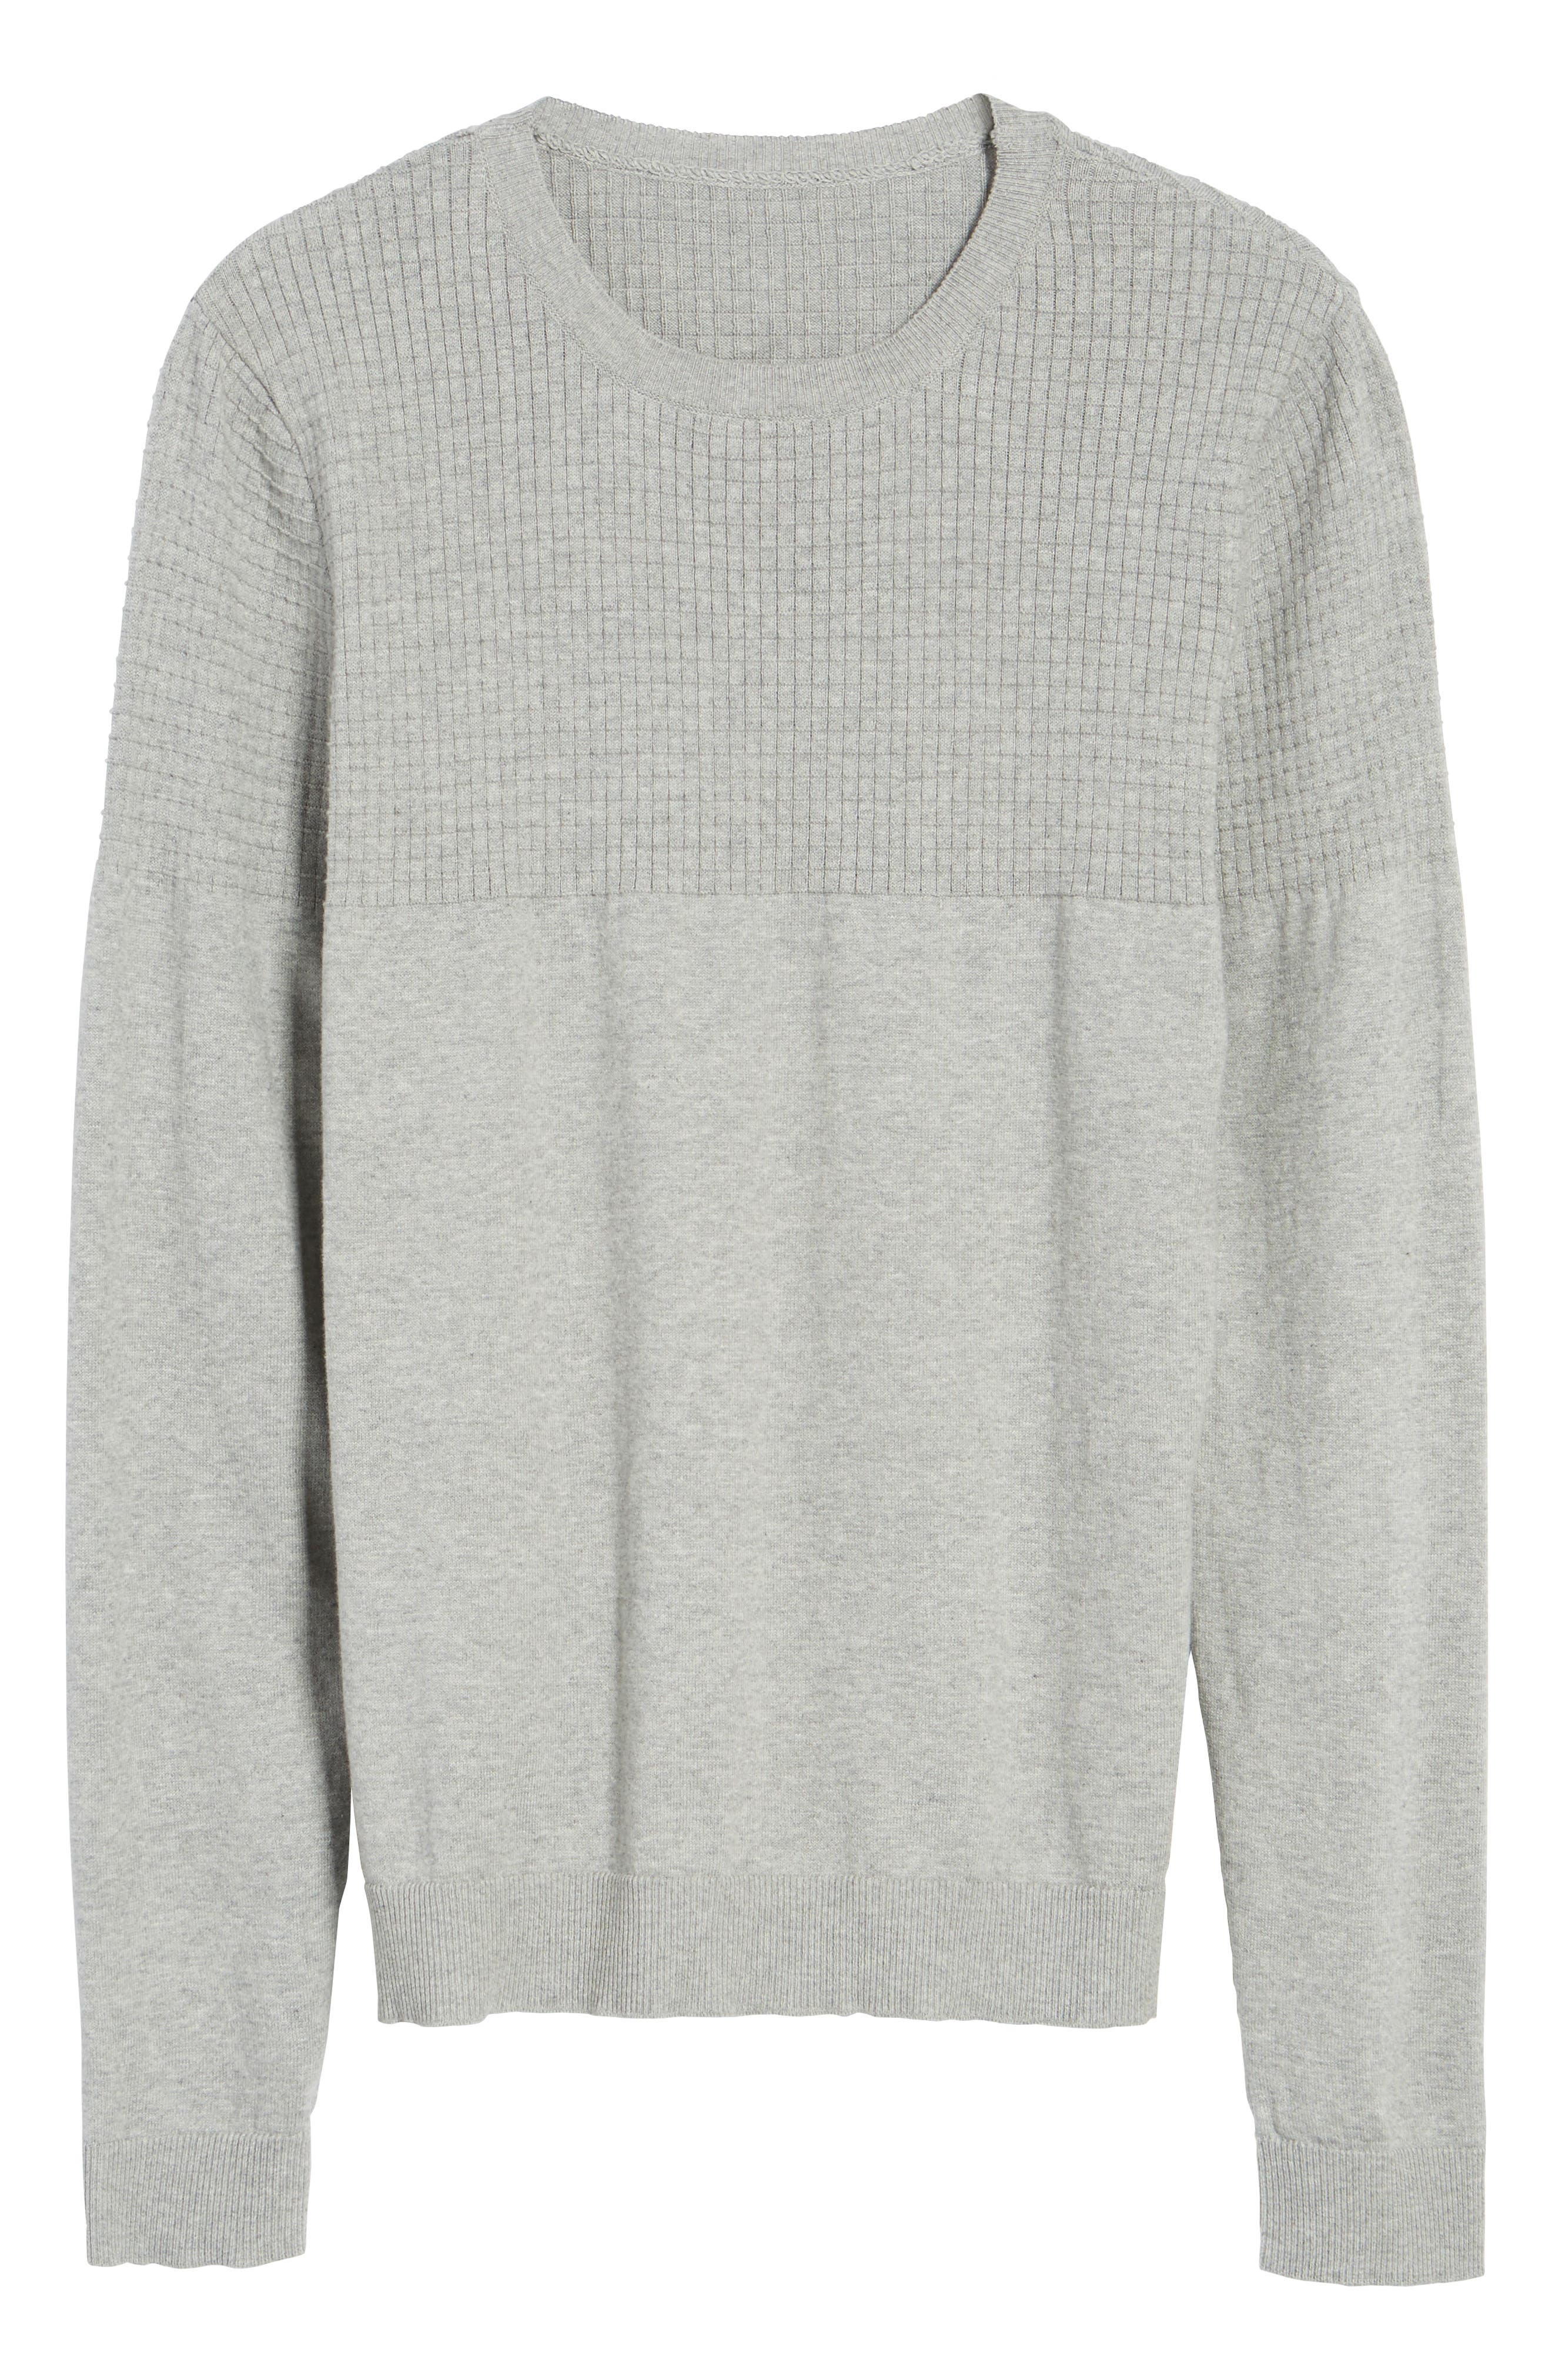 Textured Sweater,                             Alternate thumbnail 7, color,                             Grey